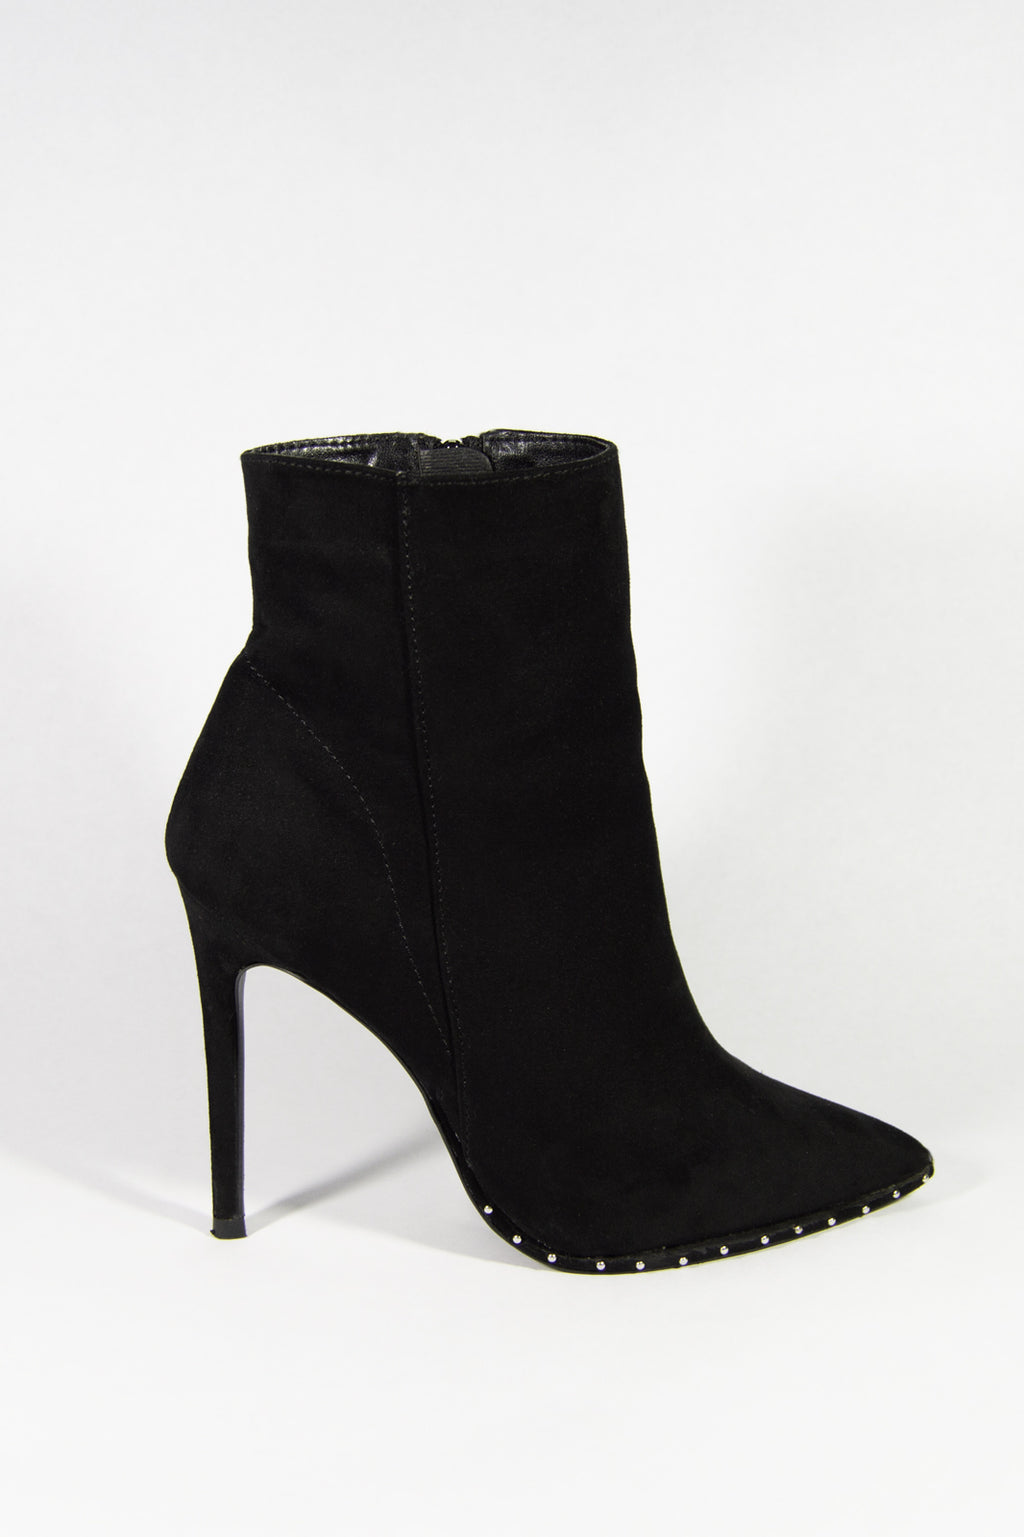 Bad Habits - Black Studded Ankle Booties